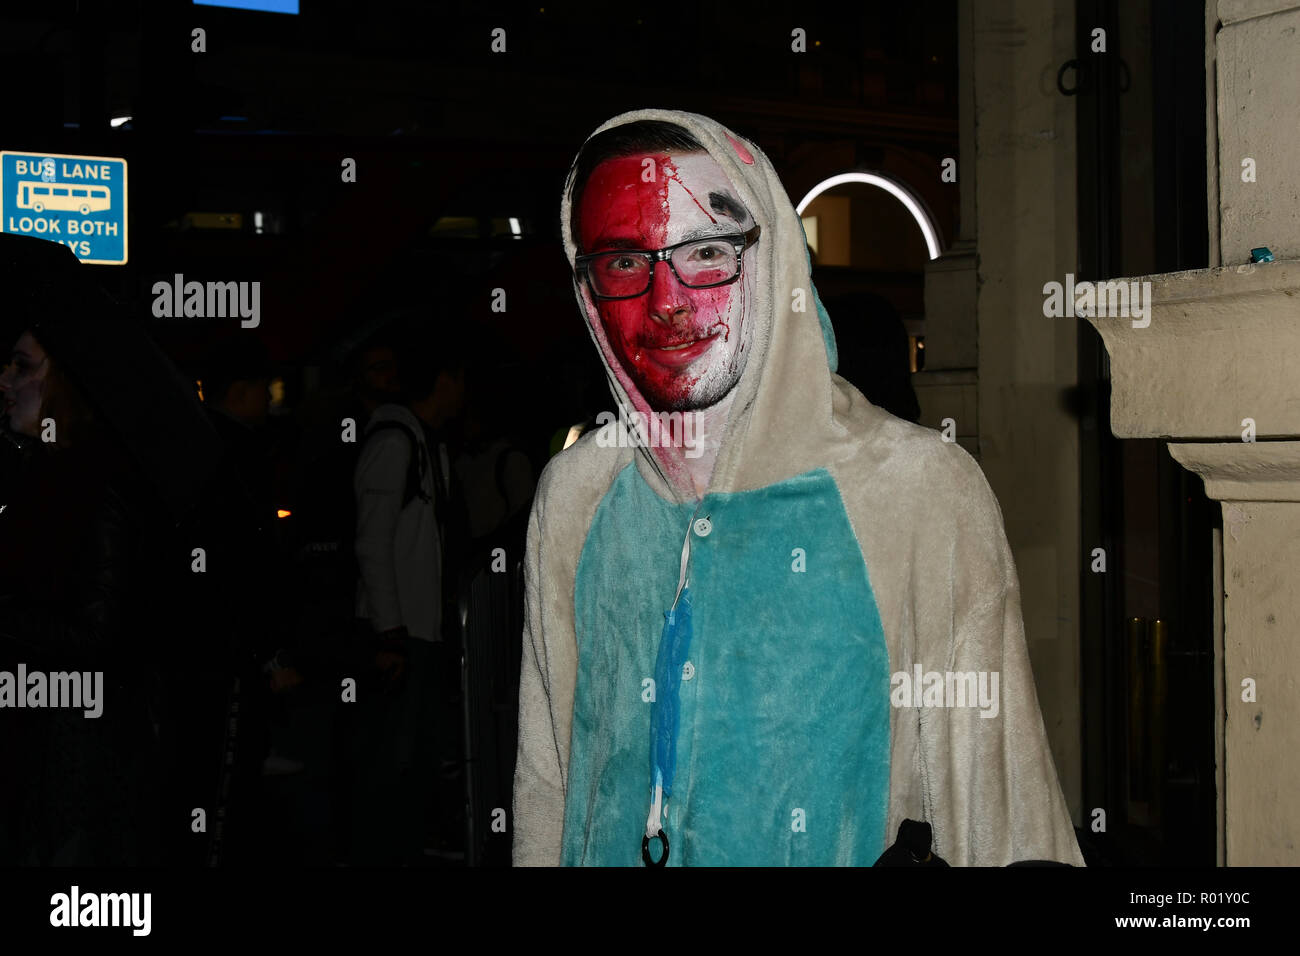 London, UK. 31st Oct, 2018. Revellers dresses up in Halloween Costume for a night in Westend for the Halloween party on 31 October 2018, London, UK. Credit: Picture Capital/Alamy Live News - Stock Image